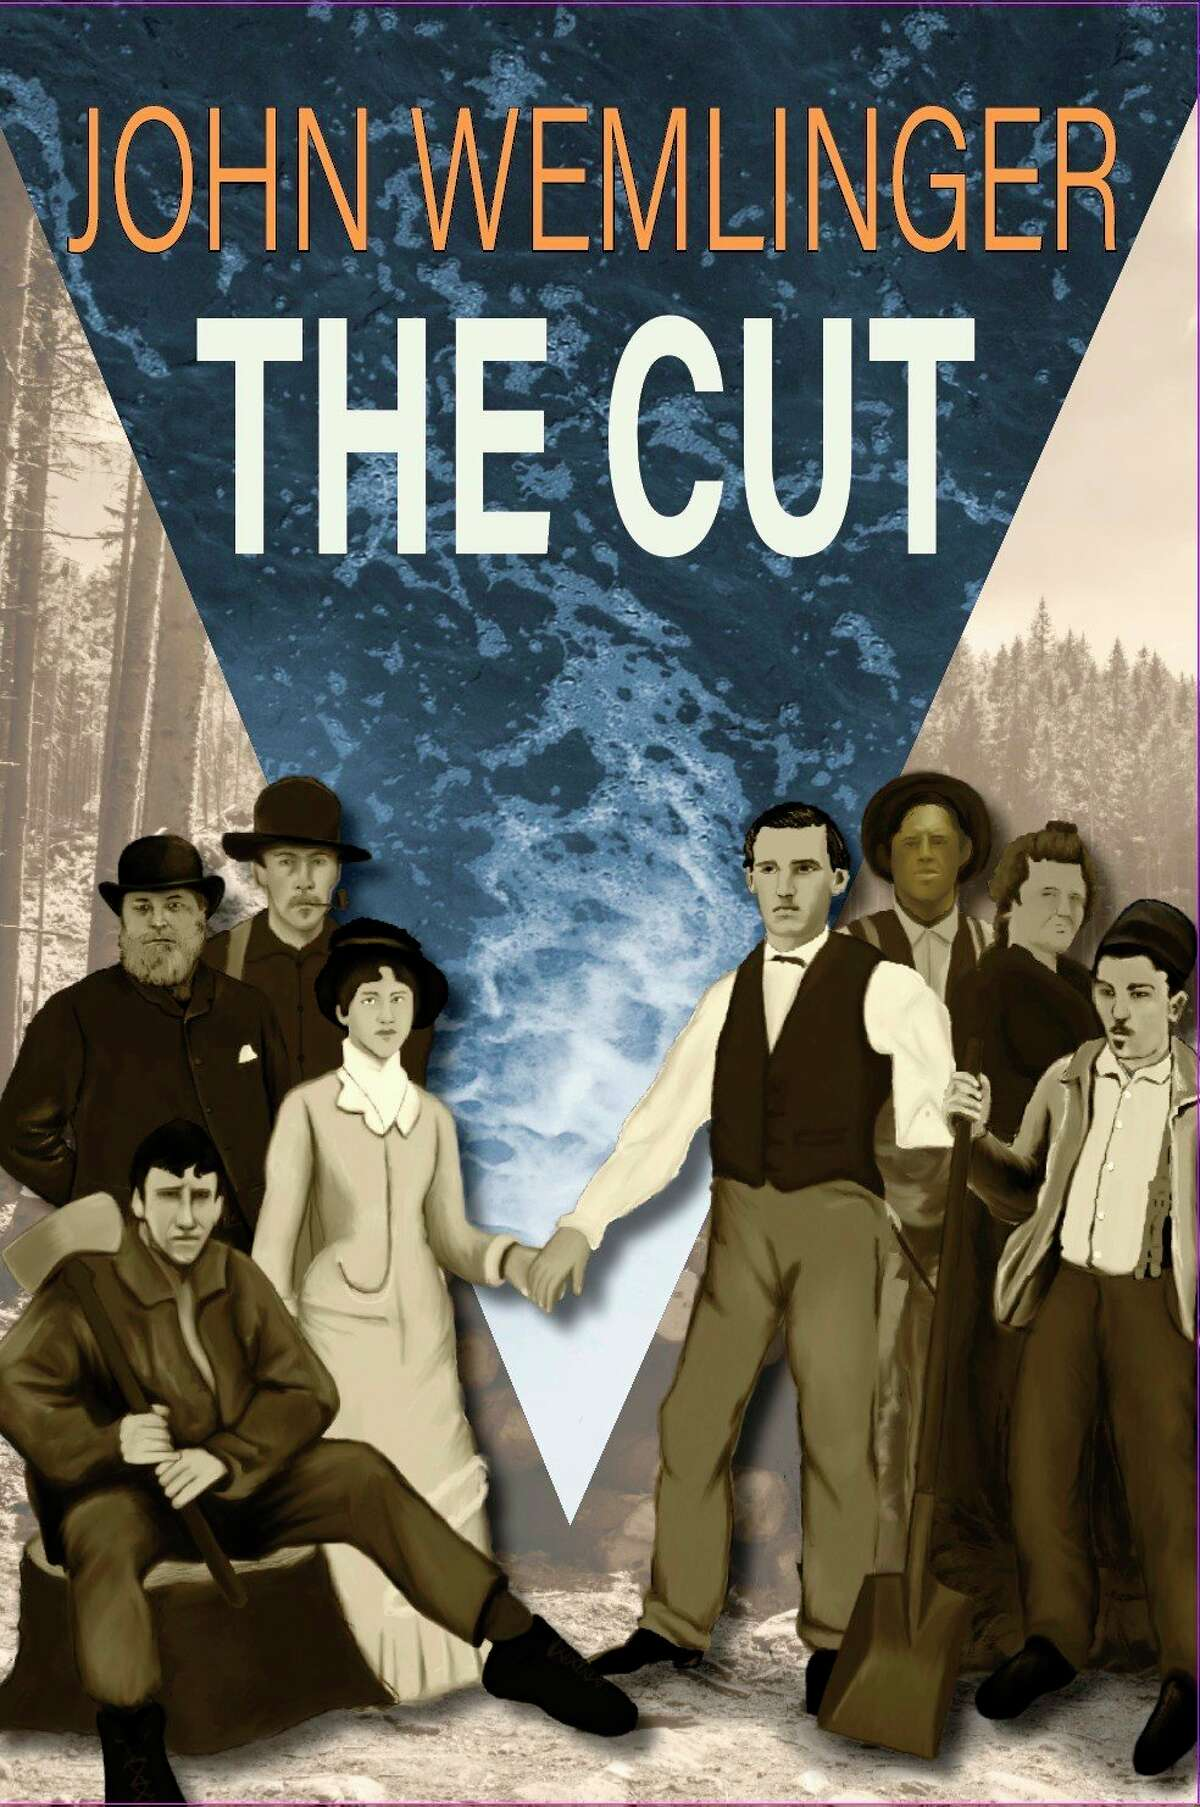 """Author John Wemlinger wrote """"The Cut,"""" a historical fiction novel, based on events that took place in Onekama in 1871. Wemlinger will discuss his novel at the Onekama Township Hall on Sept. 16. (Courtesy photo)"""